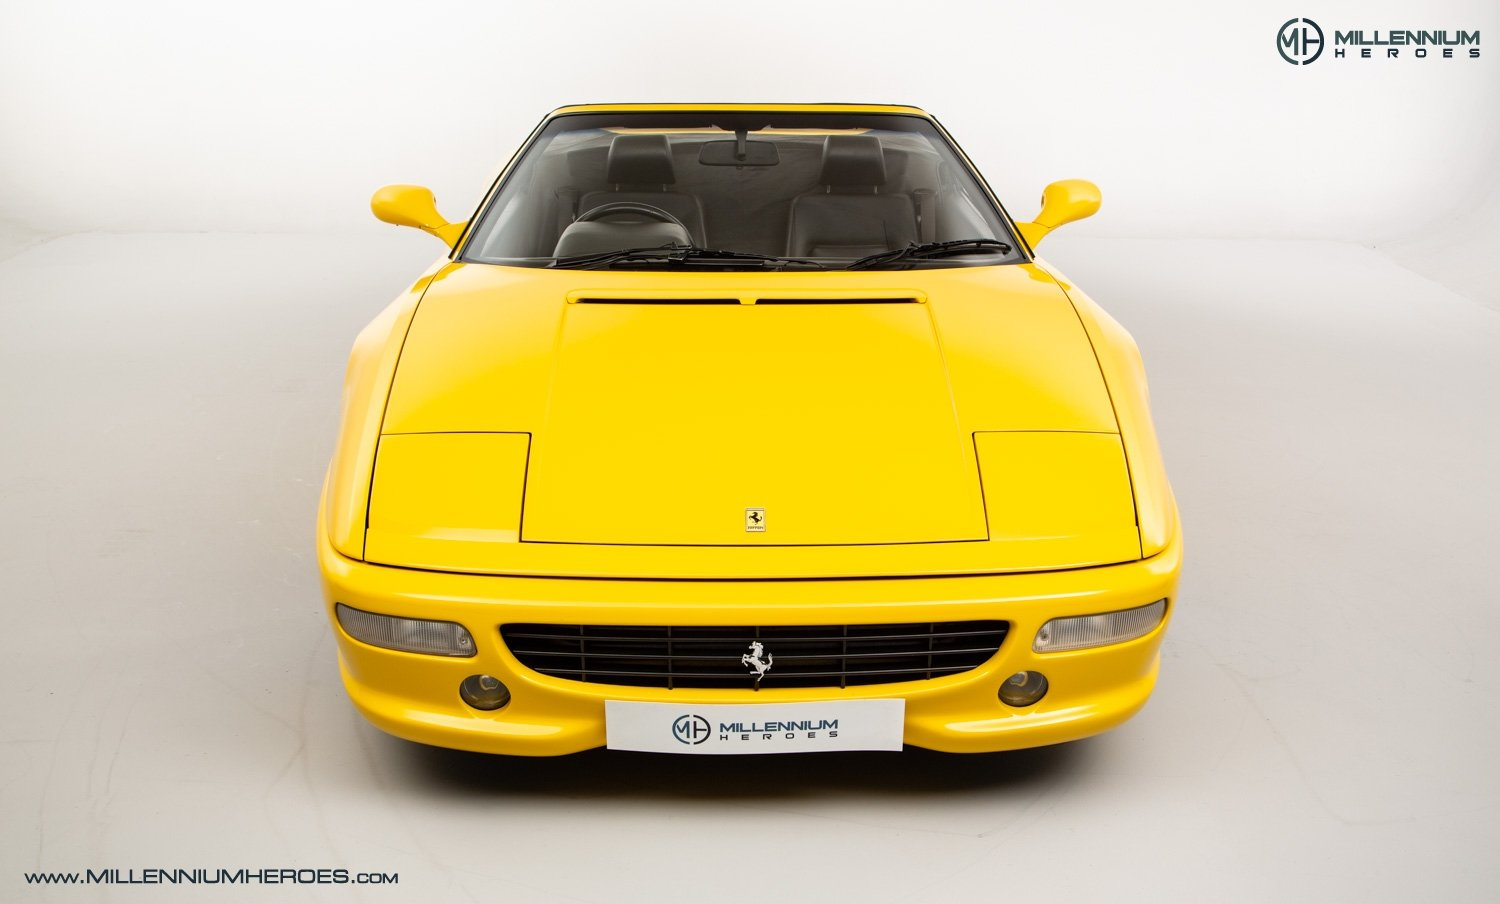 1997 FERRARI F355 SPIDER // 6 SPEED MANUAL // UK RHD // FSH For Sale (picture 3 of 22)